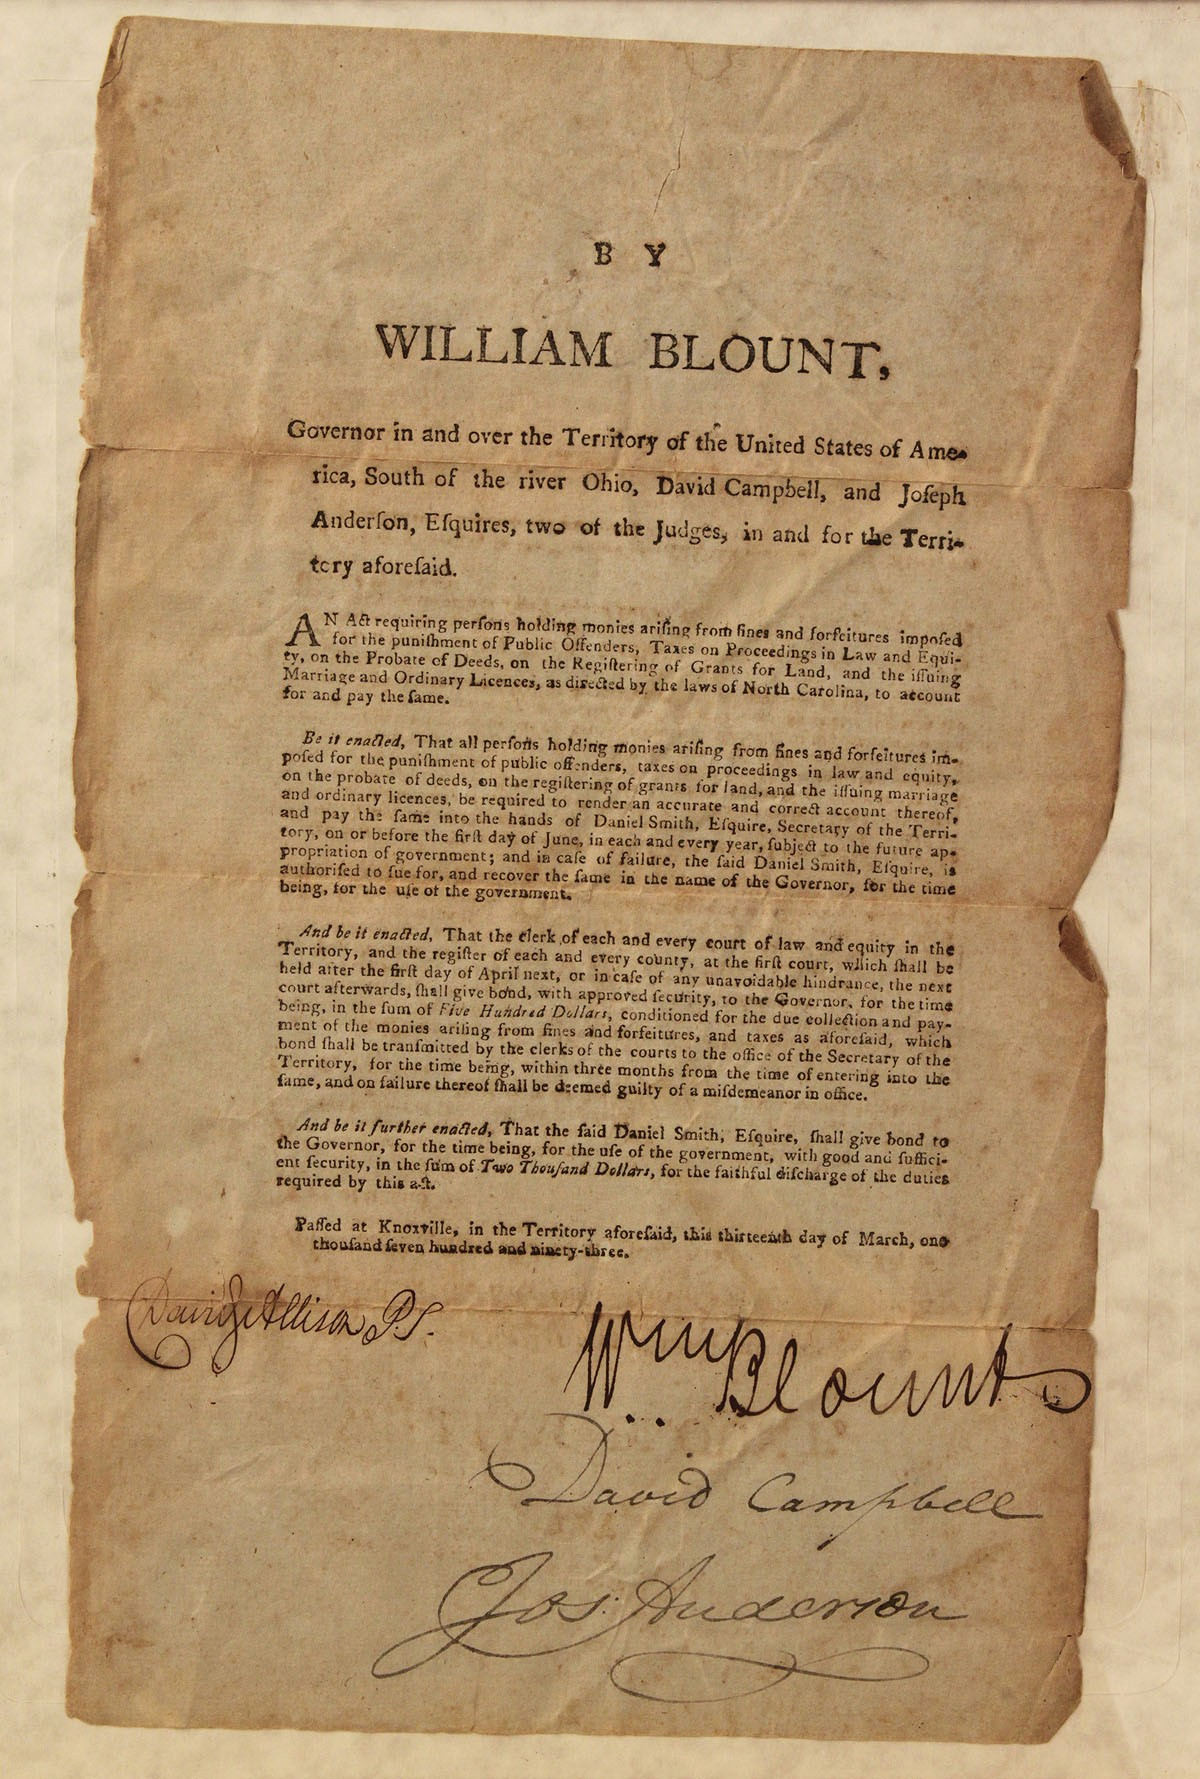 a biography of william blount On march 26, 1749, signer of the constitution and early political leader william  blount was born in bertie county blount served in the.